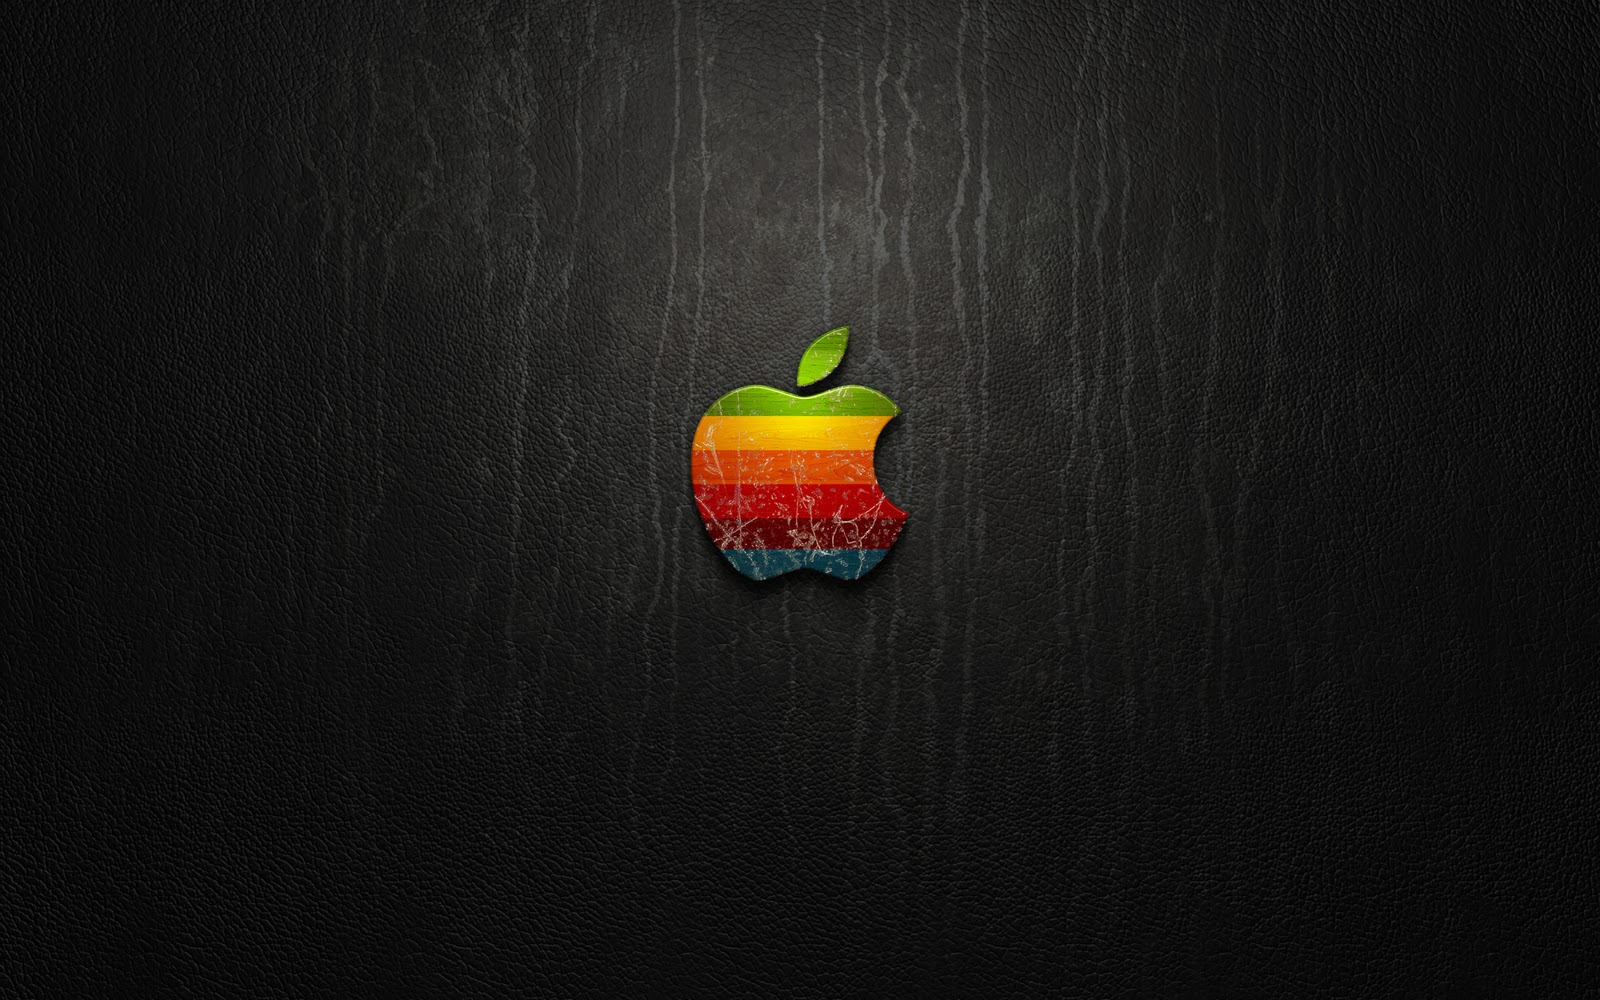 Apple Logo Wallpaper free